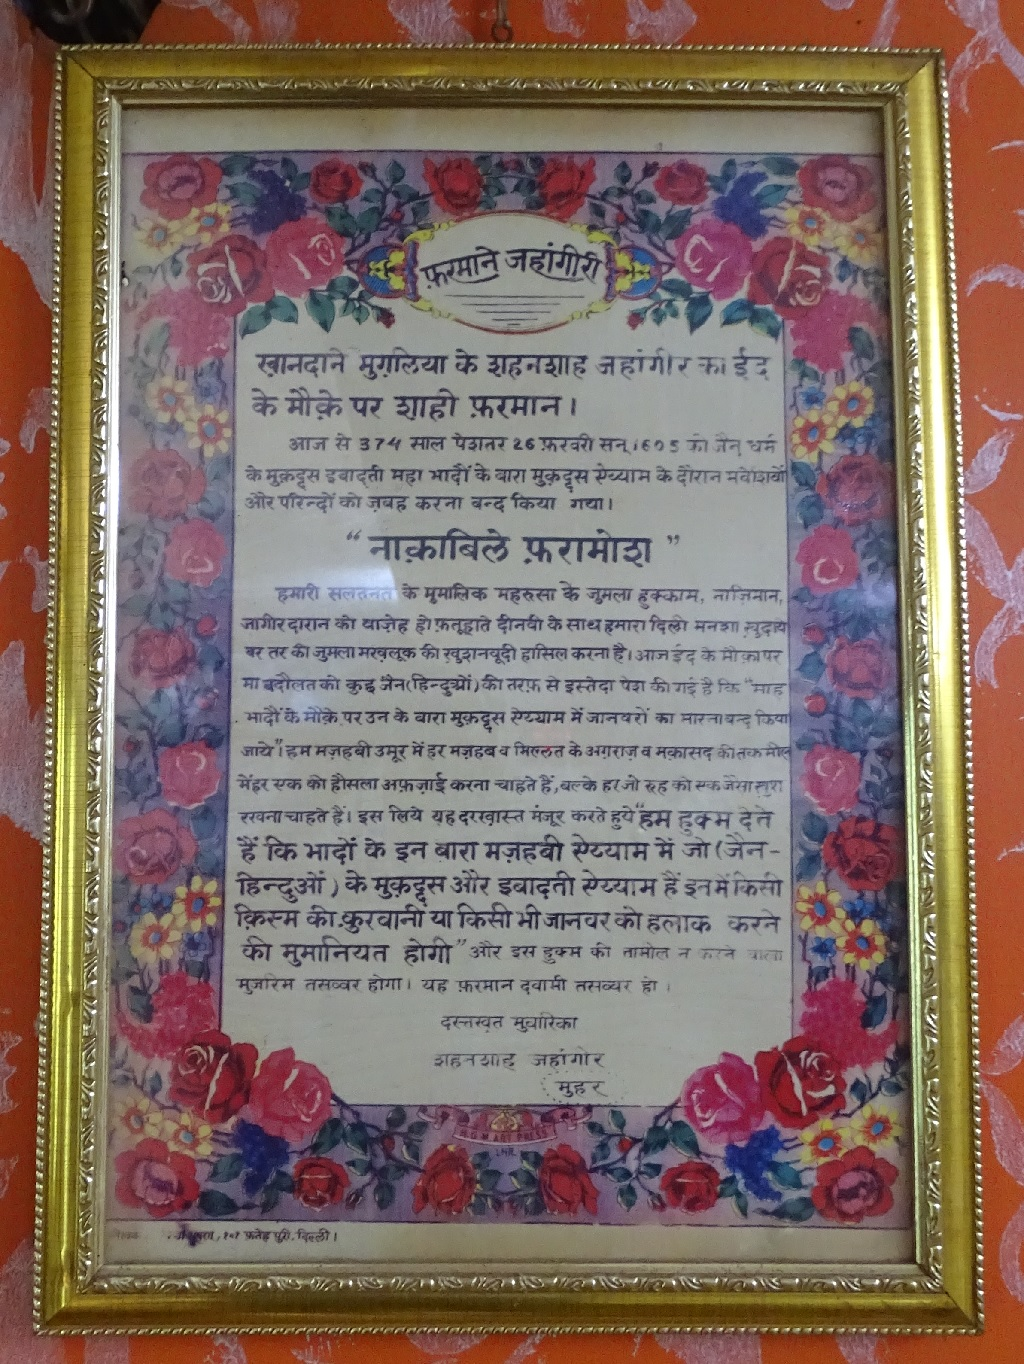 An irrevocable Royal Decree issued by Shahenshah Jahangir on 26 February, 1605